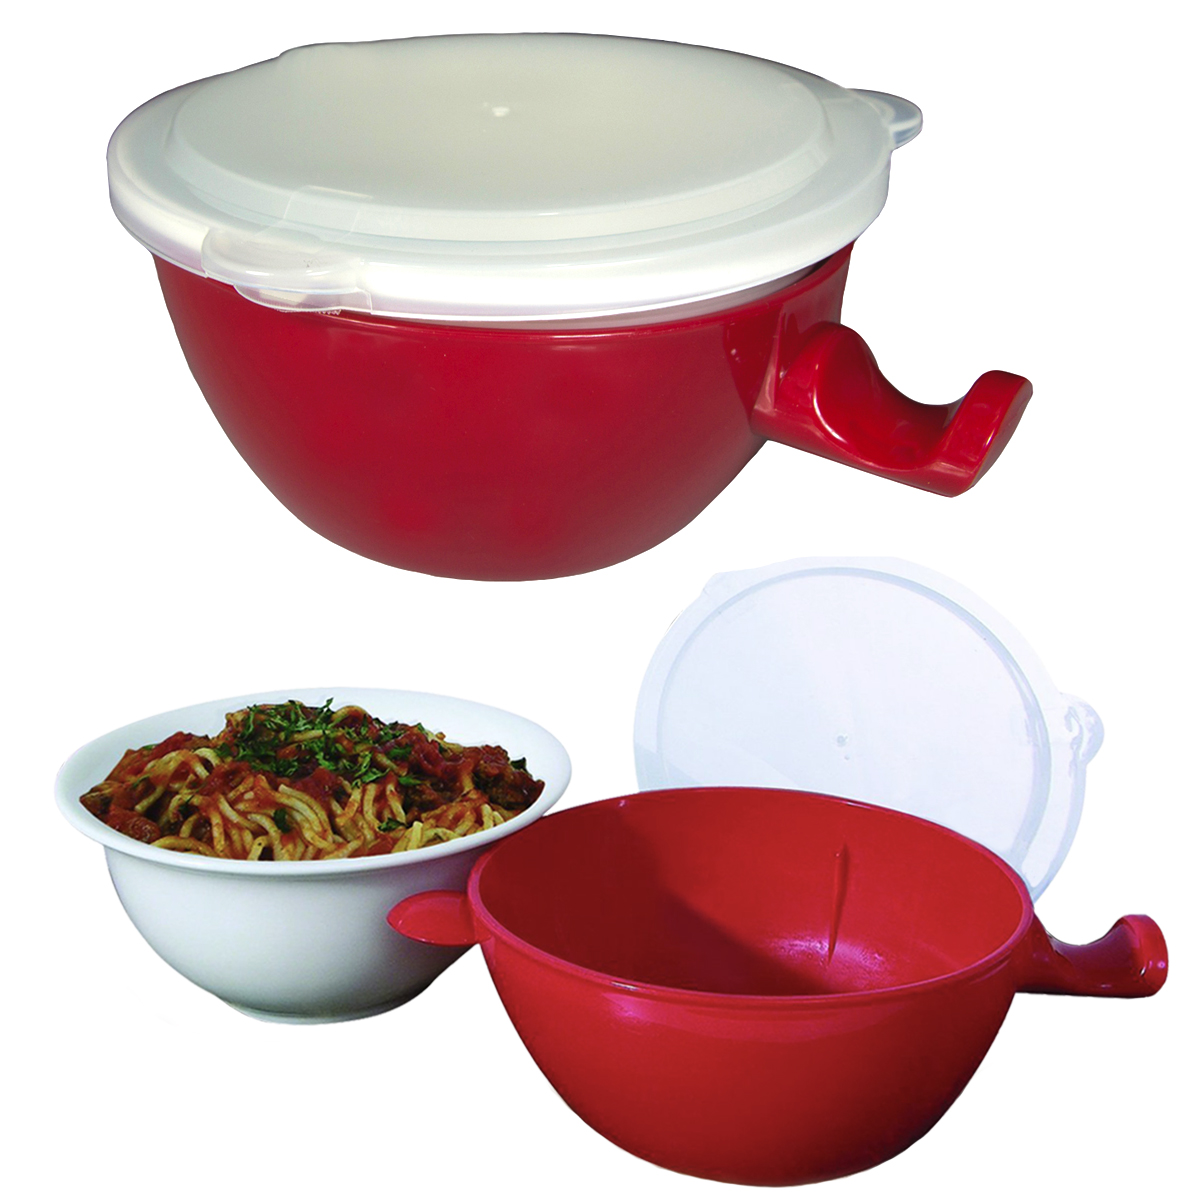 2 Yum! Heat & Eat 24oz Microwave Bowl 3pc Set Stay Cool Handle For Ramen Soup Containers